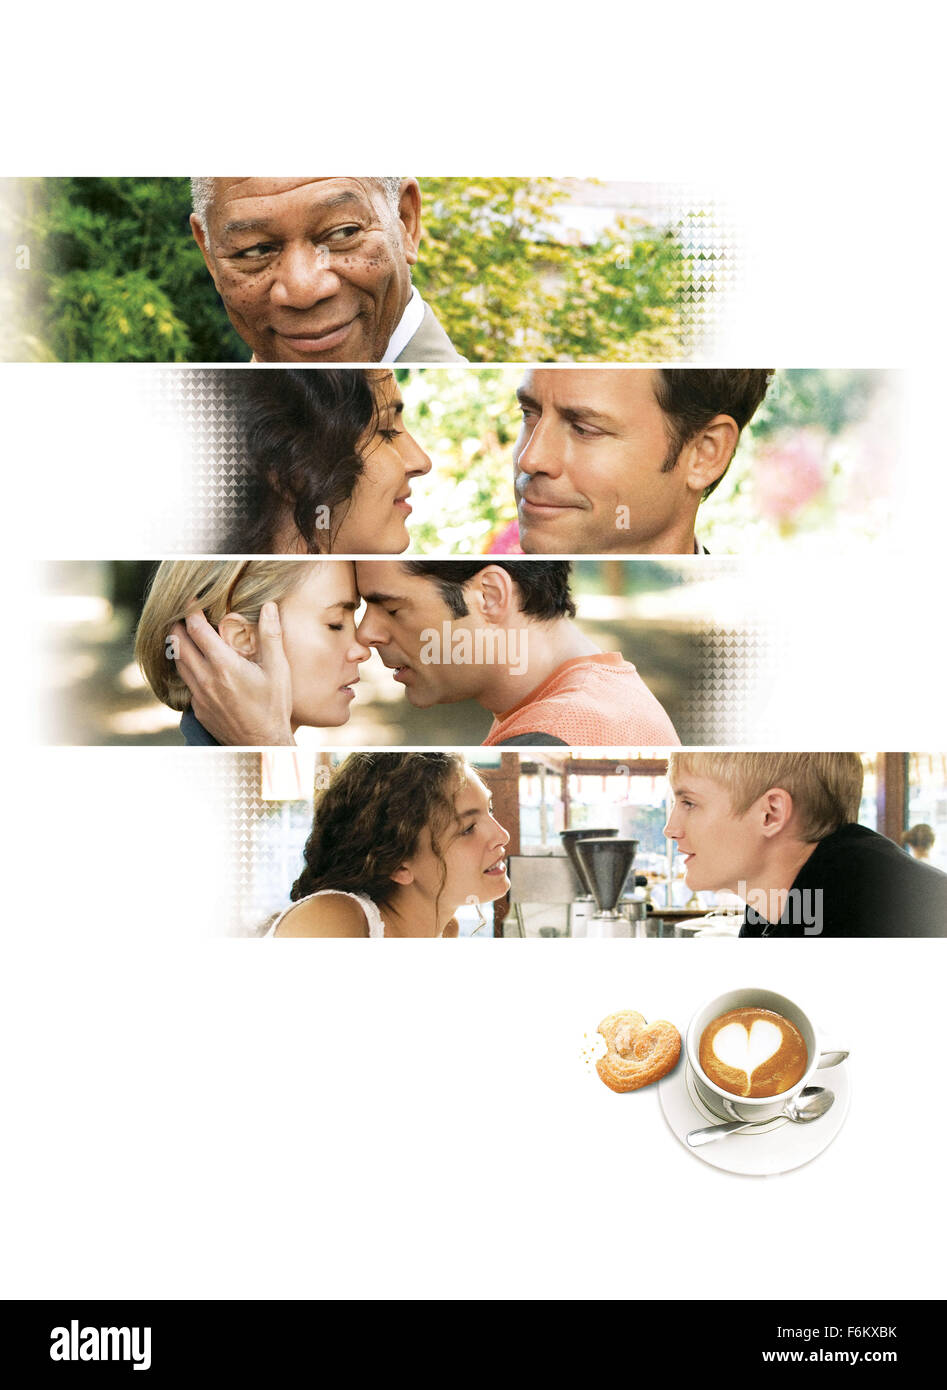 release date september 2007 movie stock photos amp release